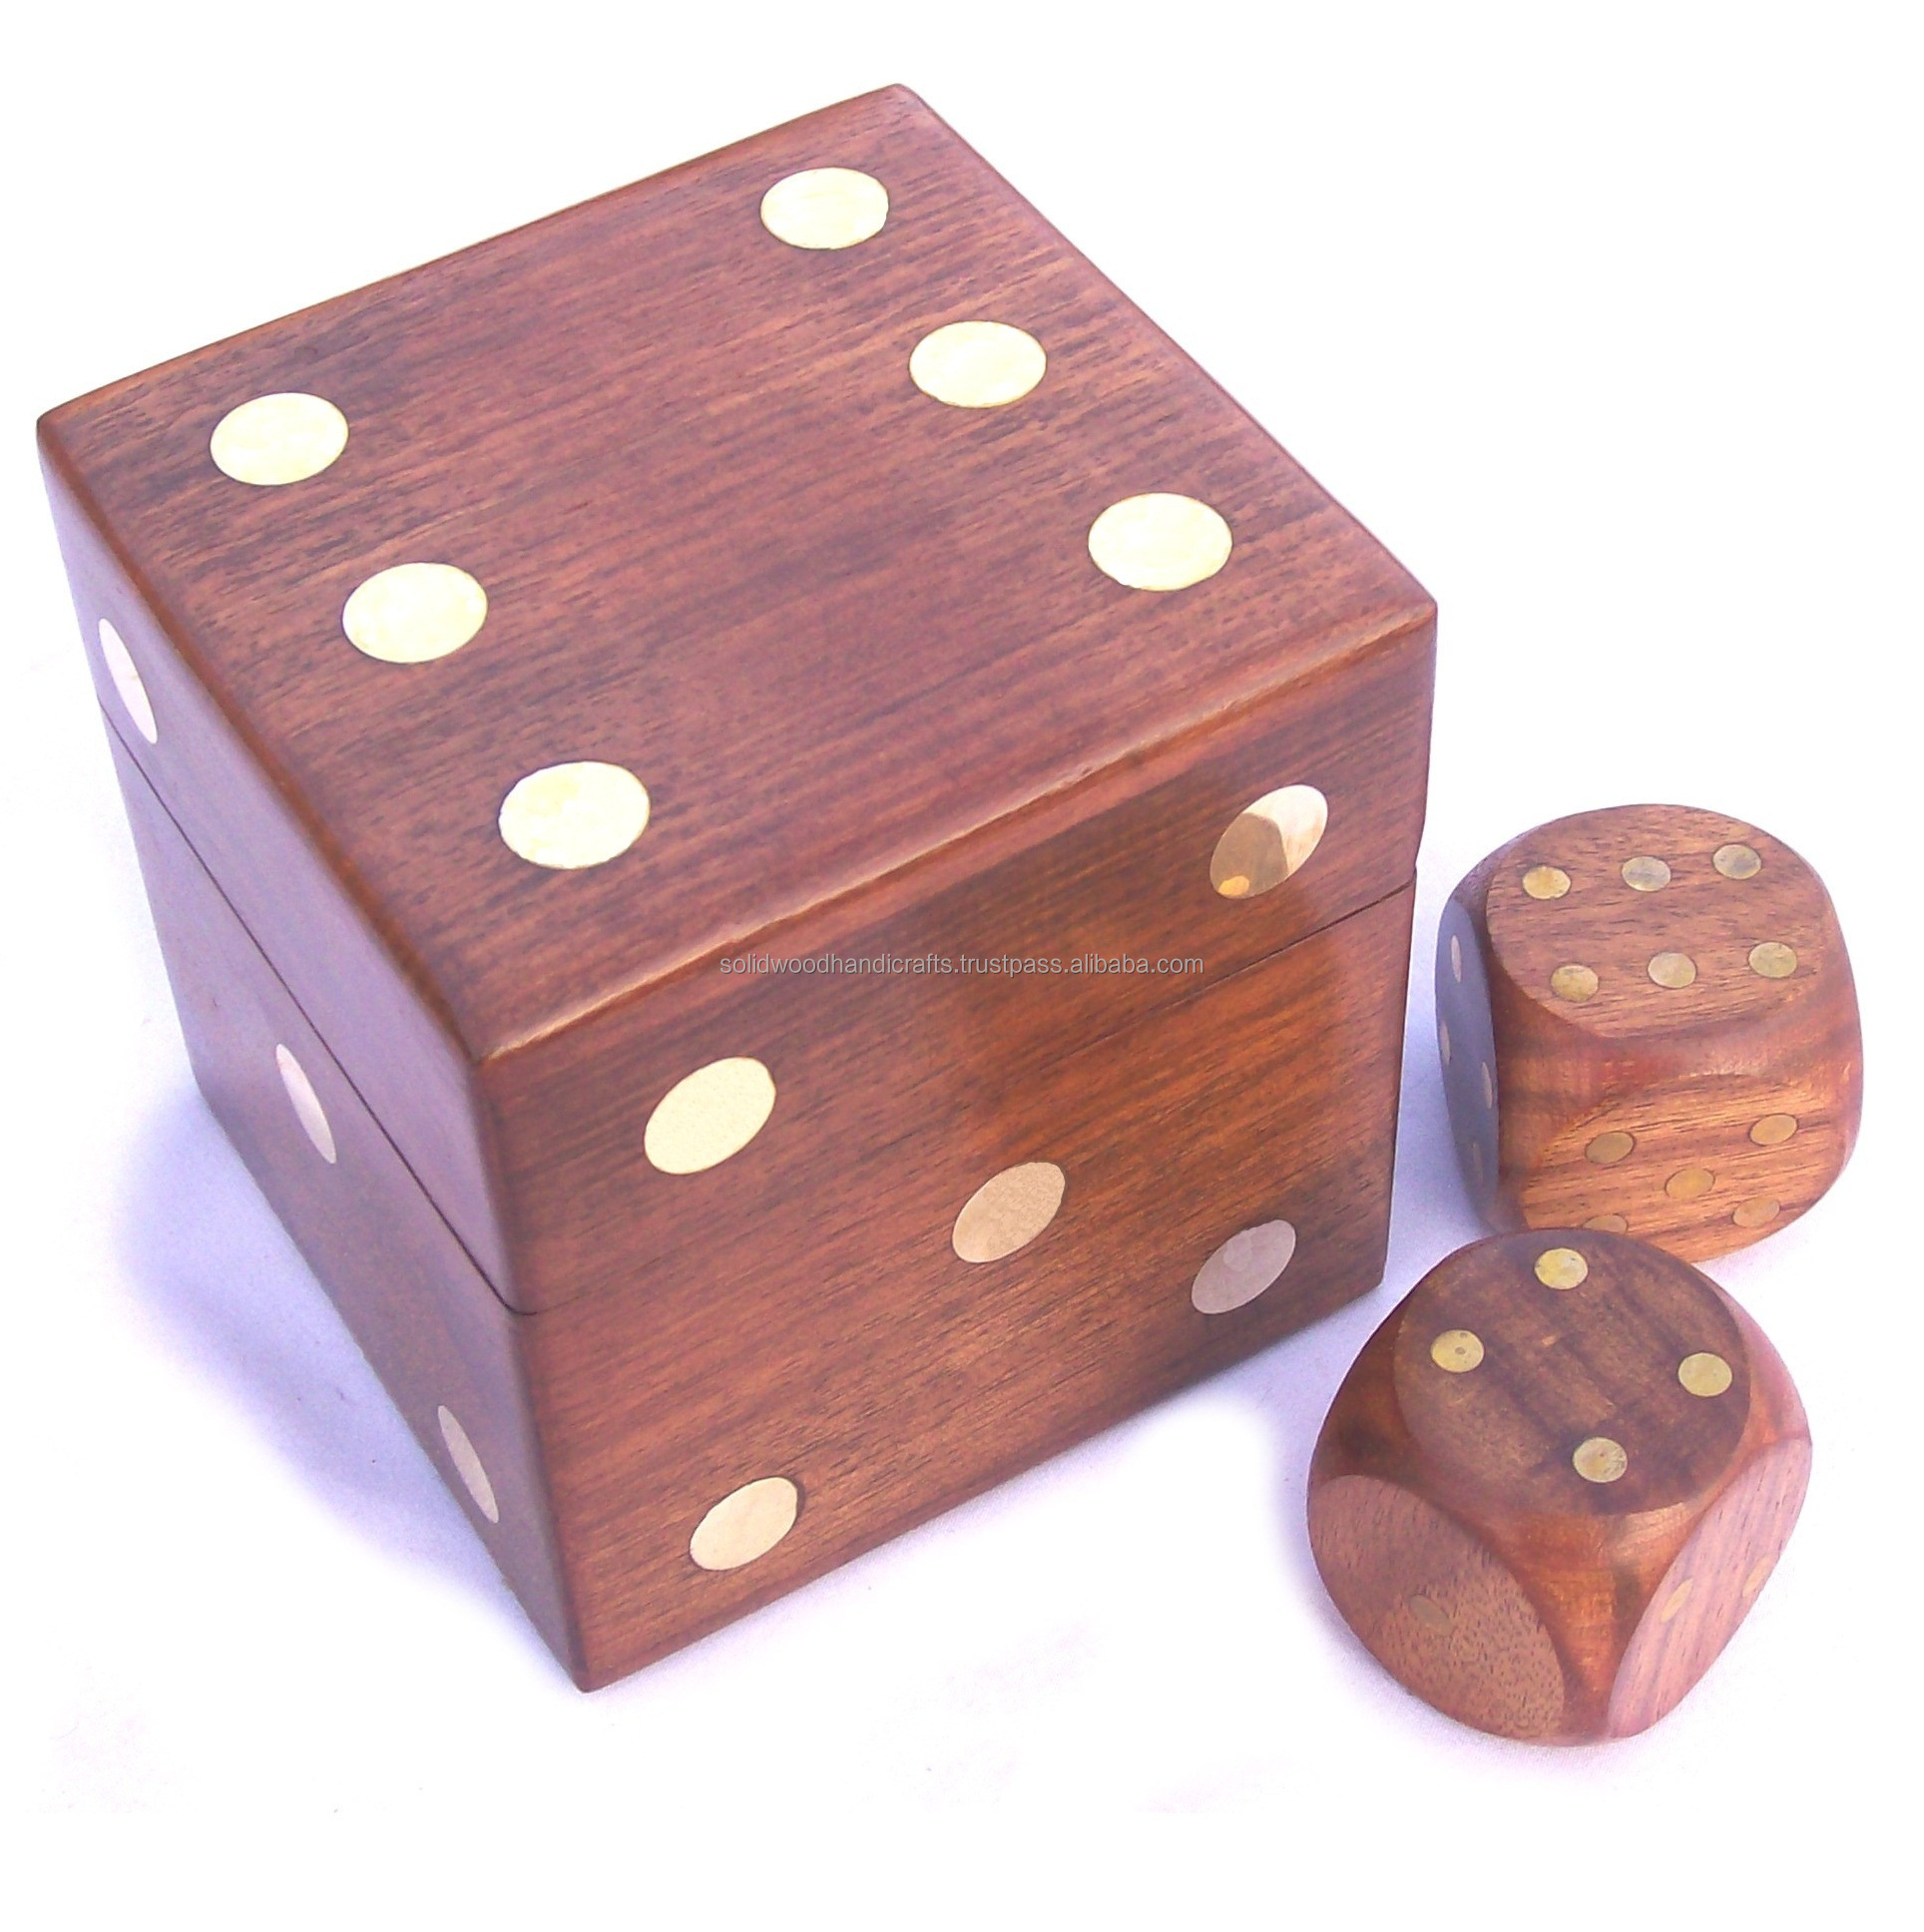 HOUTEN TRADITIONELE BORDSPELLEN/INDOOR GAMES/DOMINO/DOBBELSTENEN/POKER SET/schaken